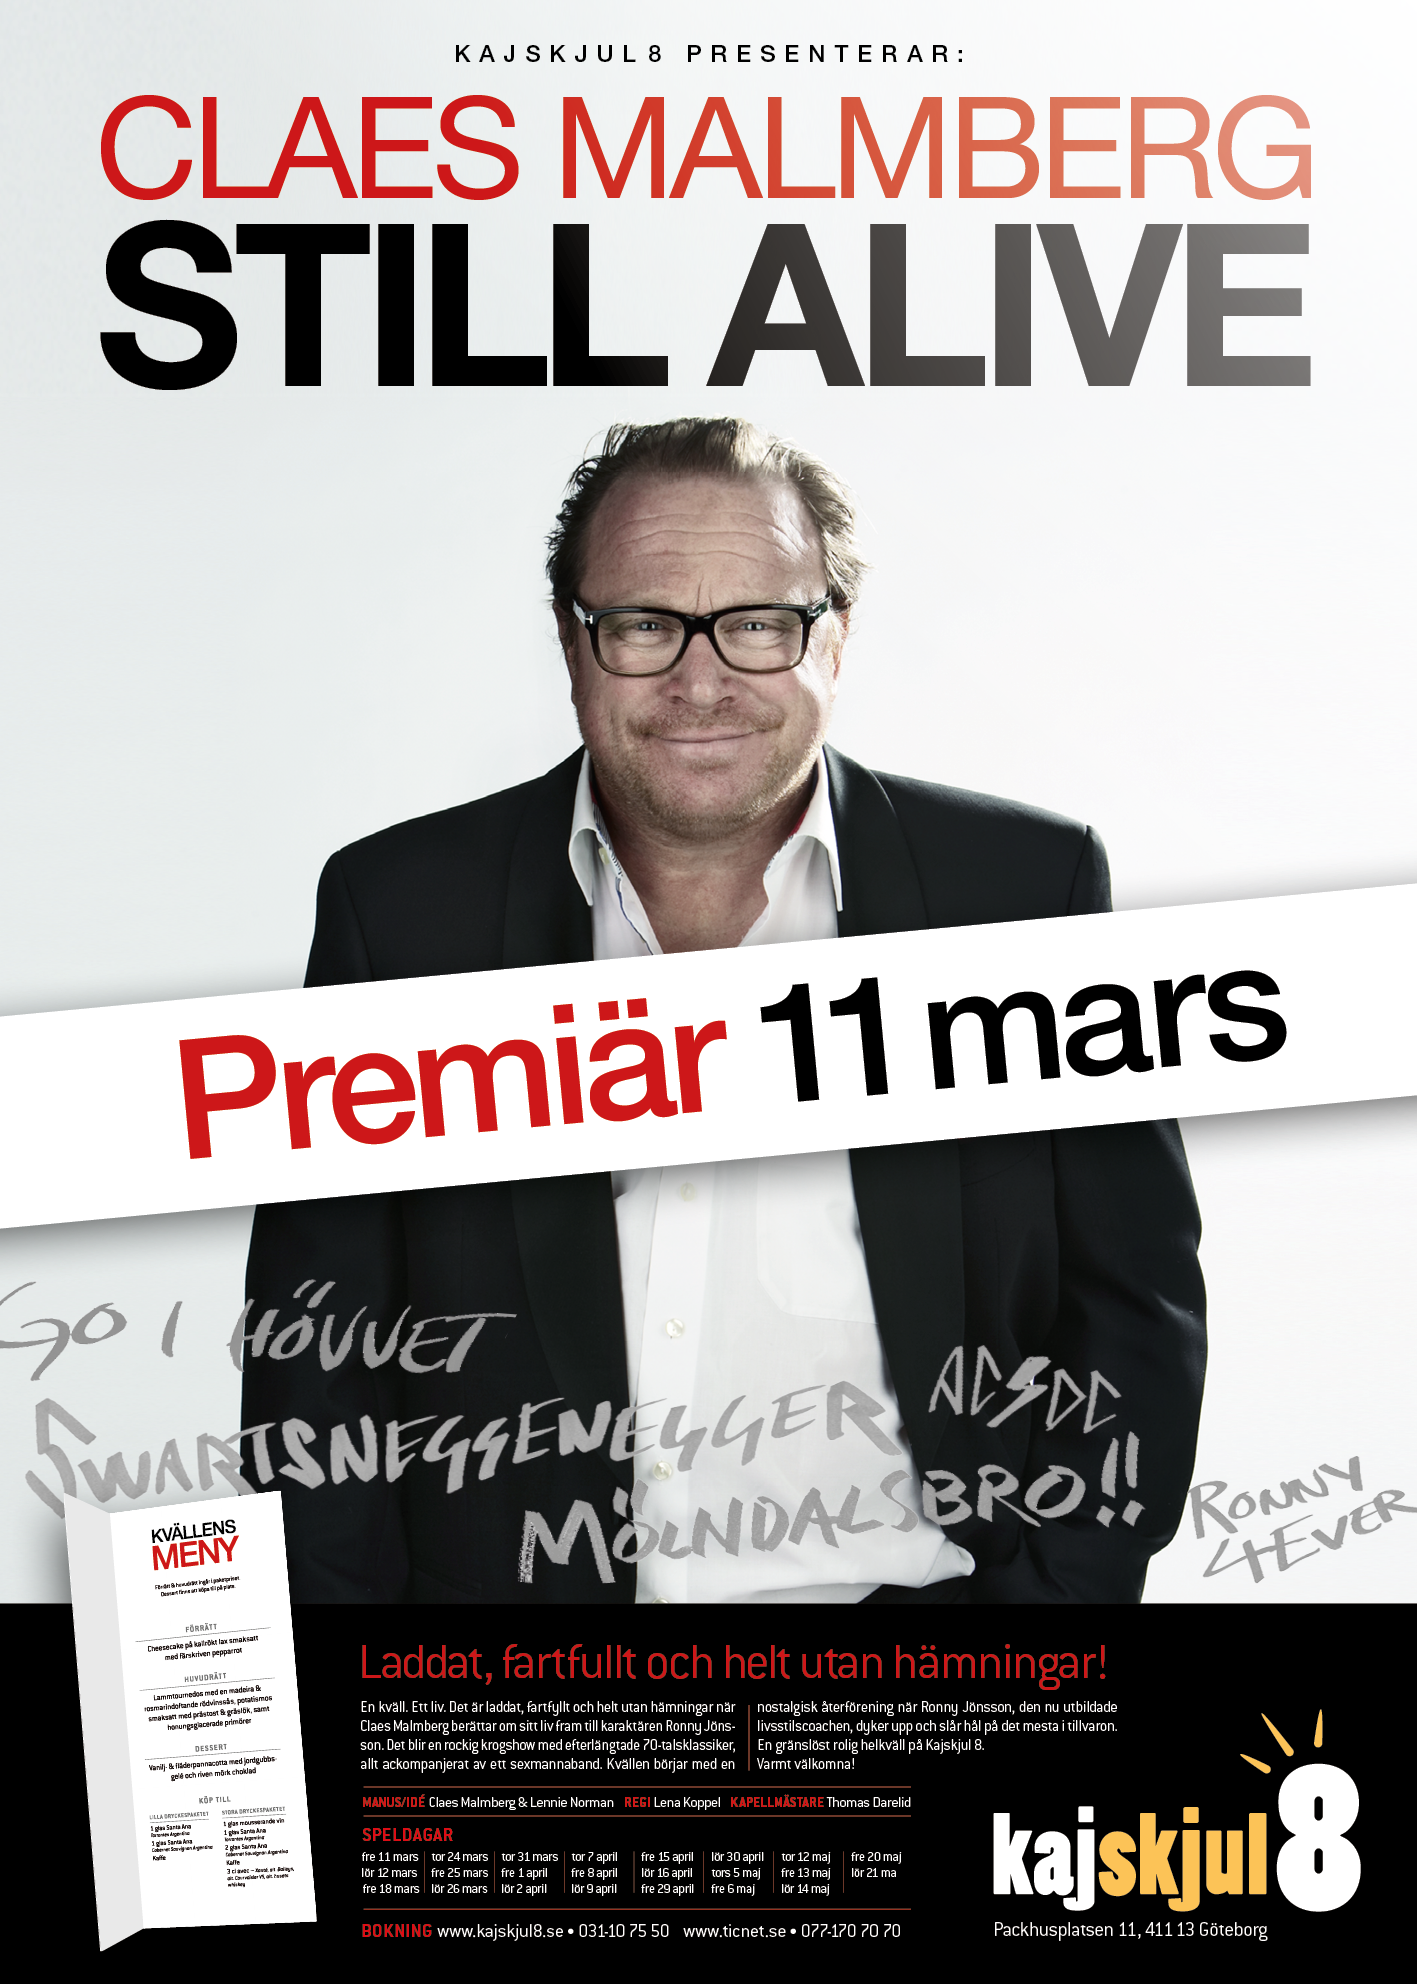 StillAlive-Poster-50x70mm-high-02.png